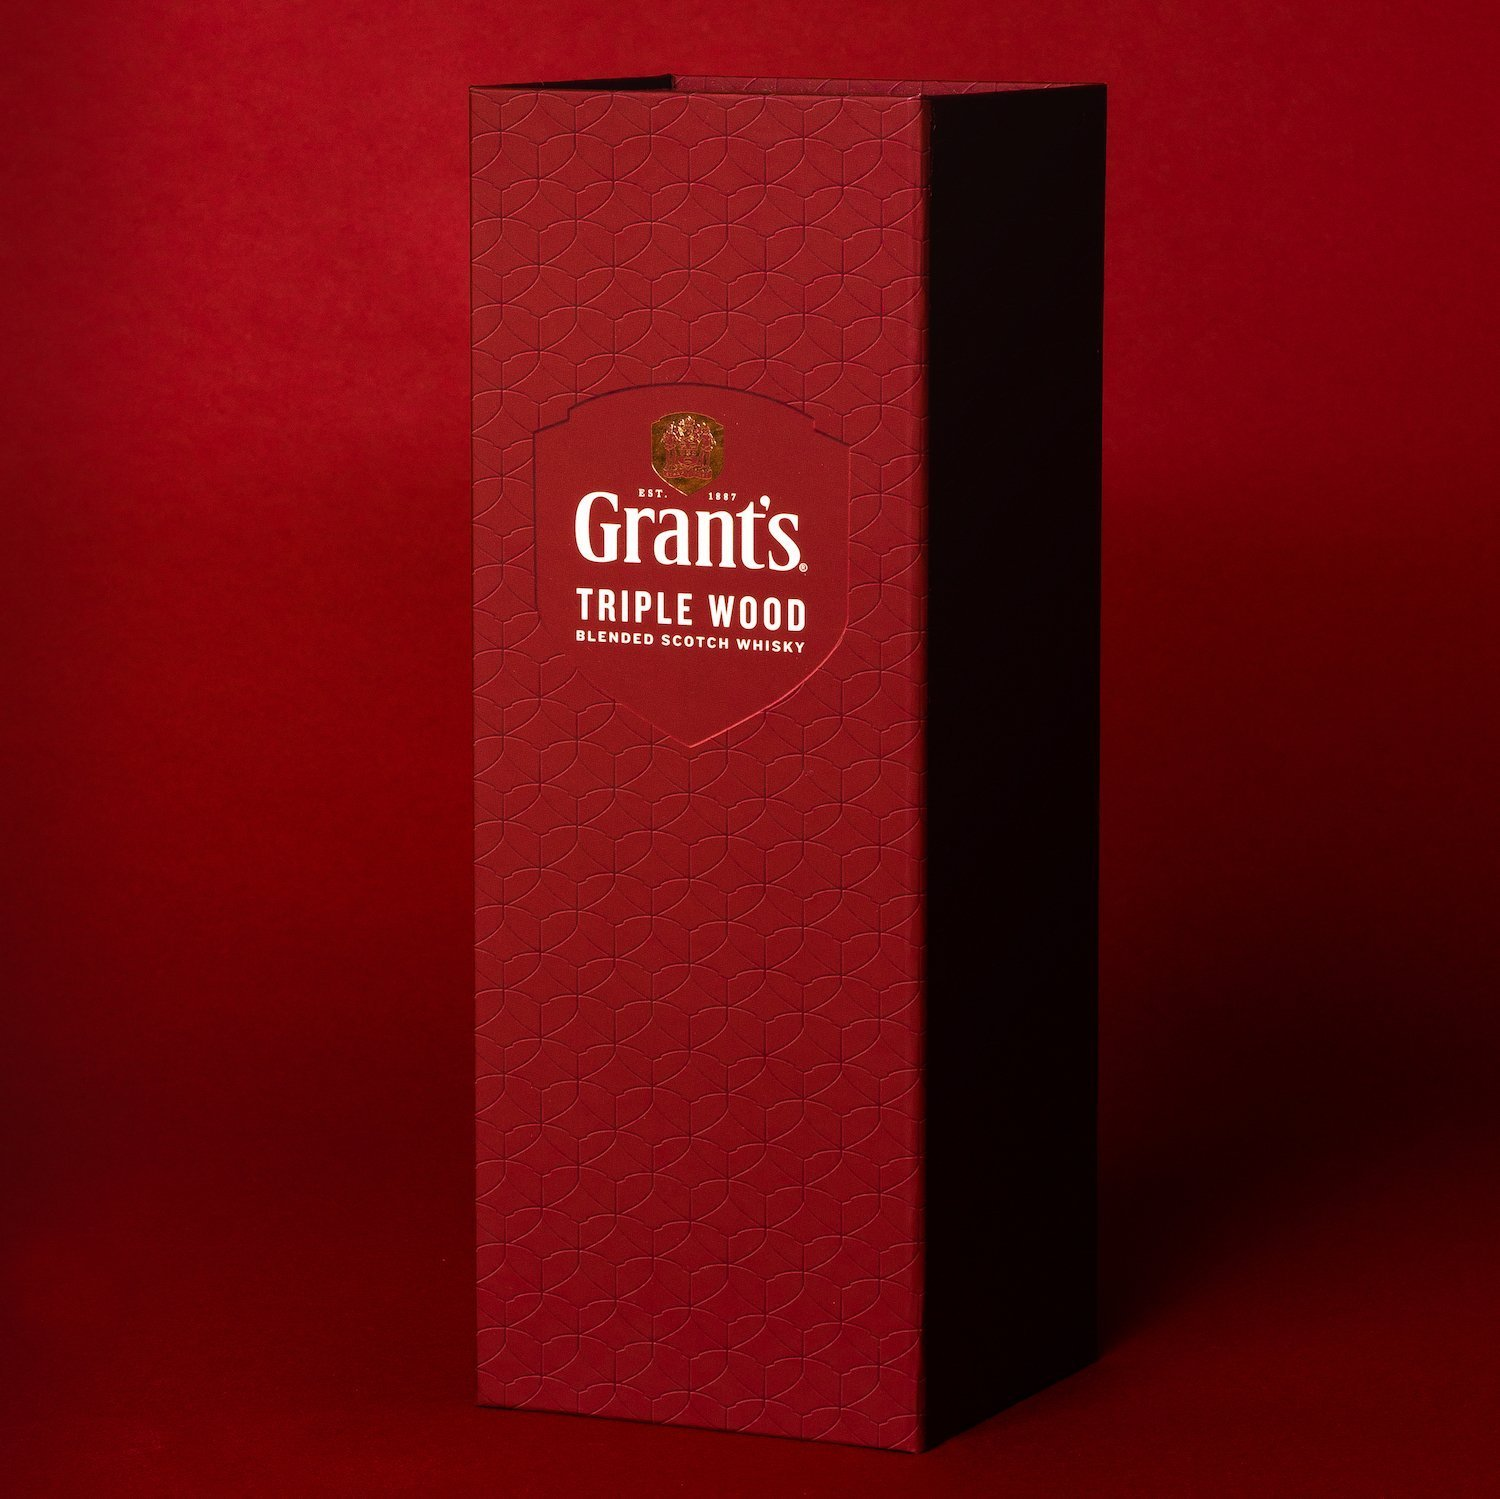 Grants - Luxury Box